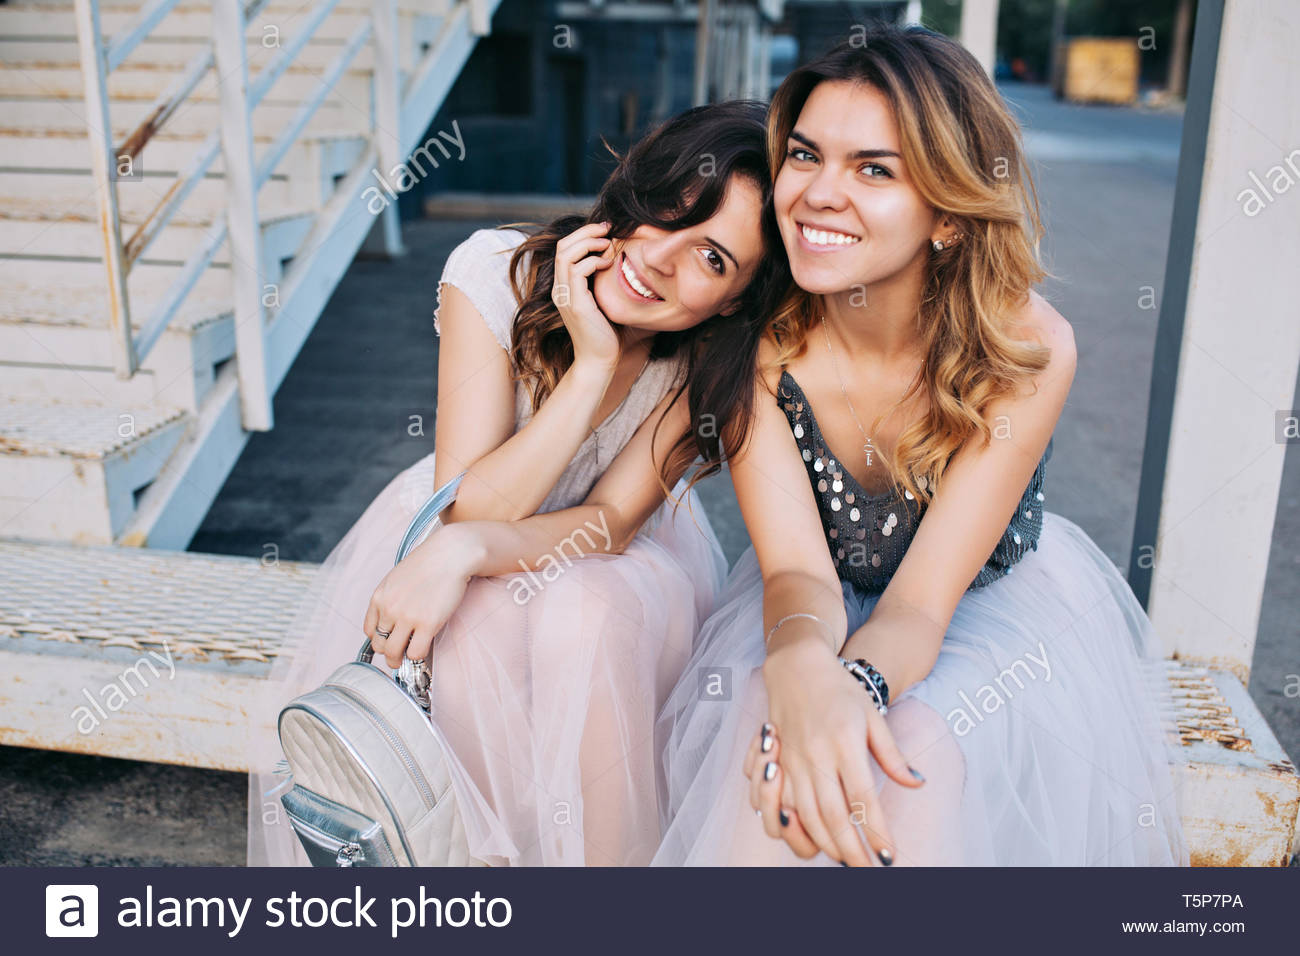 Portrait of two attractive girls in tulle skirts sitting outdoor on stairs. They smiling to camera - Stock Image